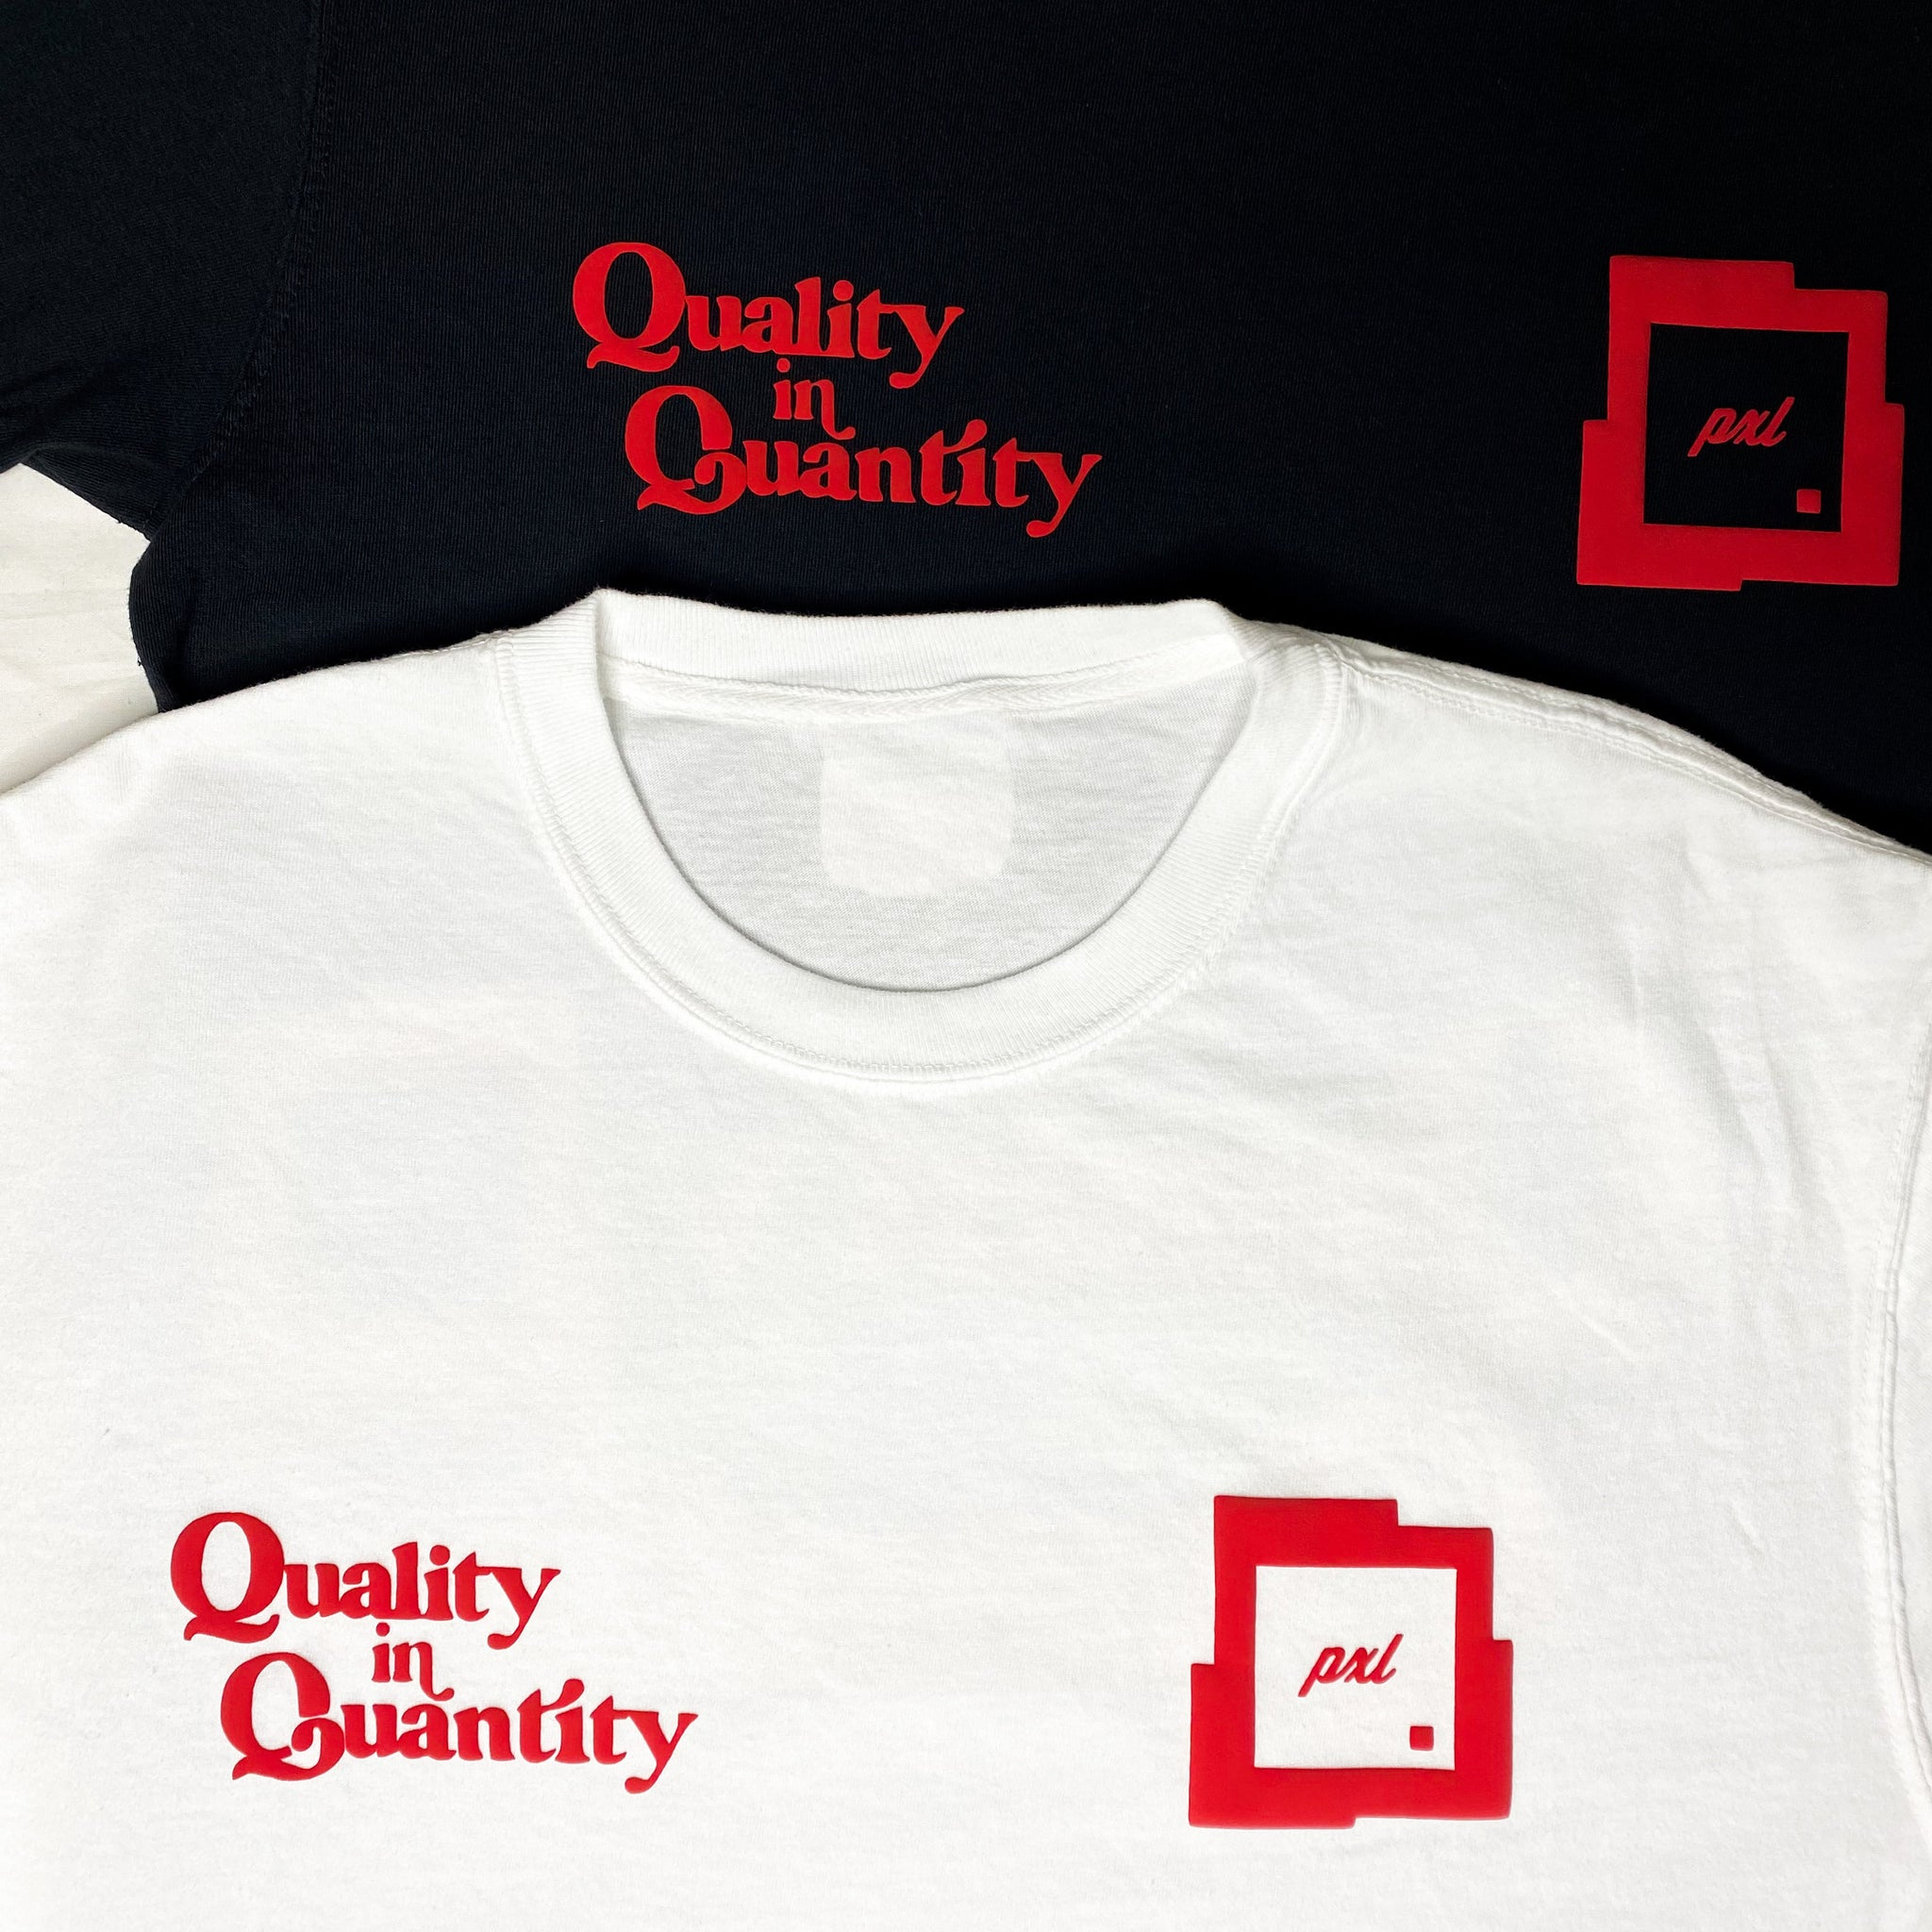 PXL 'QUALITY IN QUANTITY' TEE BLACK